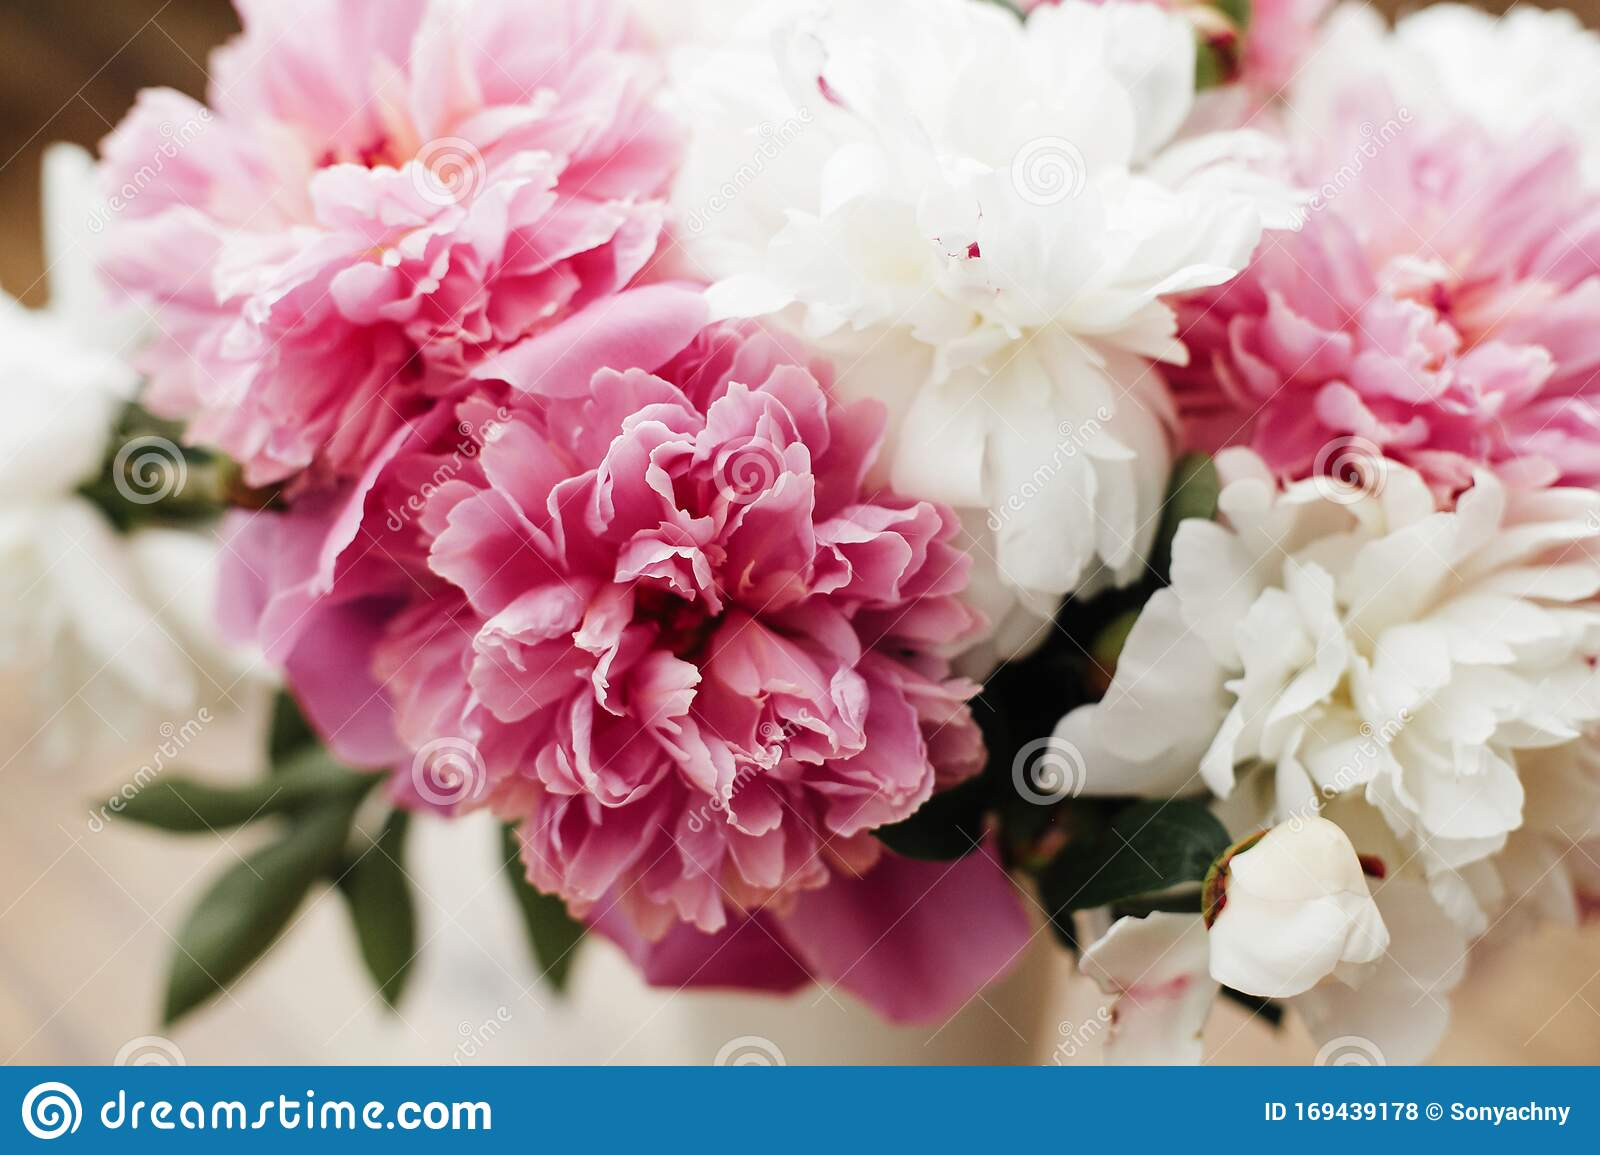 Beautiful Peony Bouquet In Sunny Light Stylish Pink And White Peonies On Wooden Background Hello Spring Happy Mothers Day Stock Photo Image Of Leaf Love 169439178